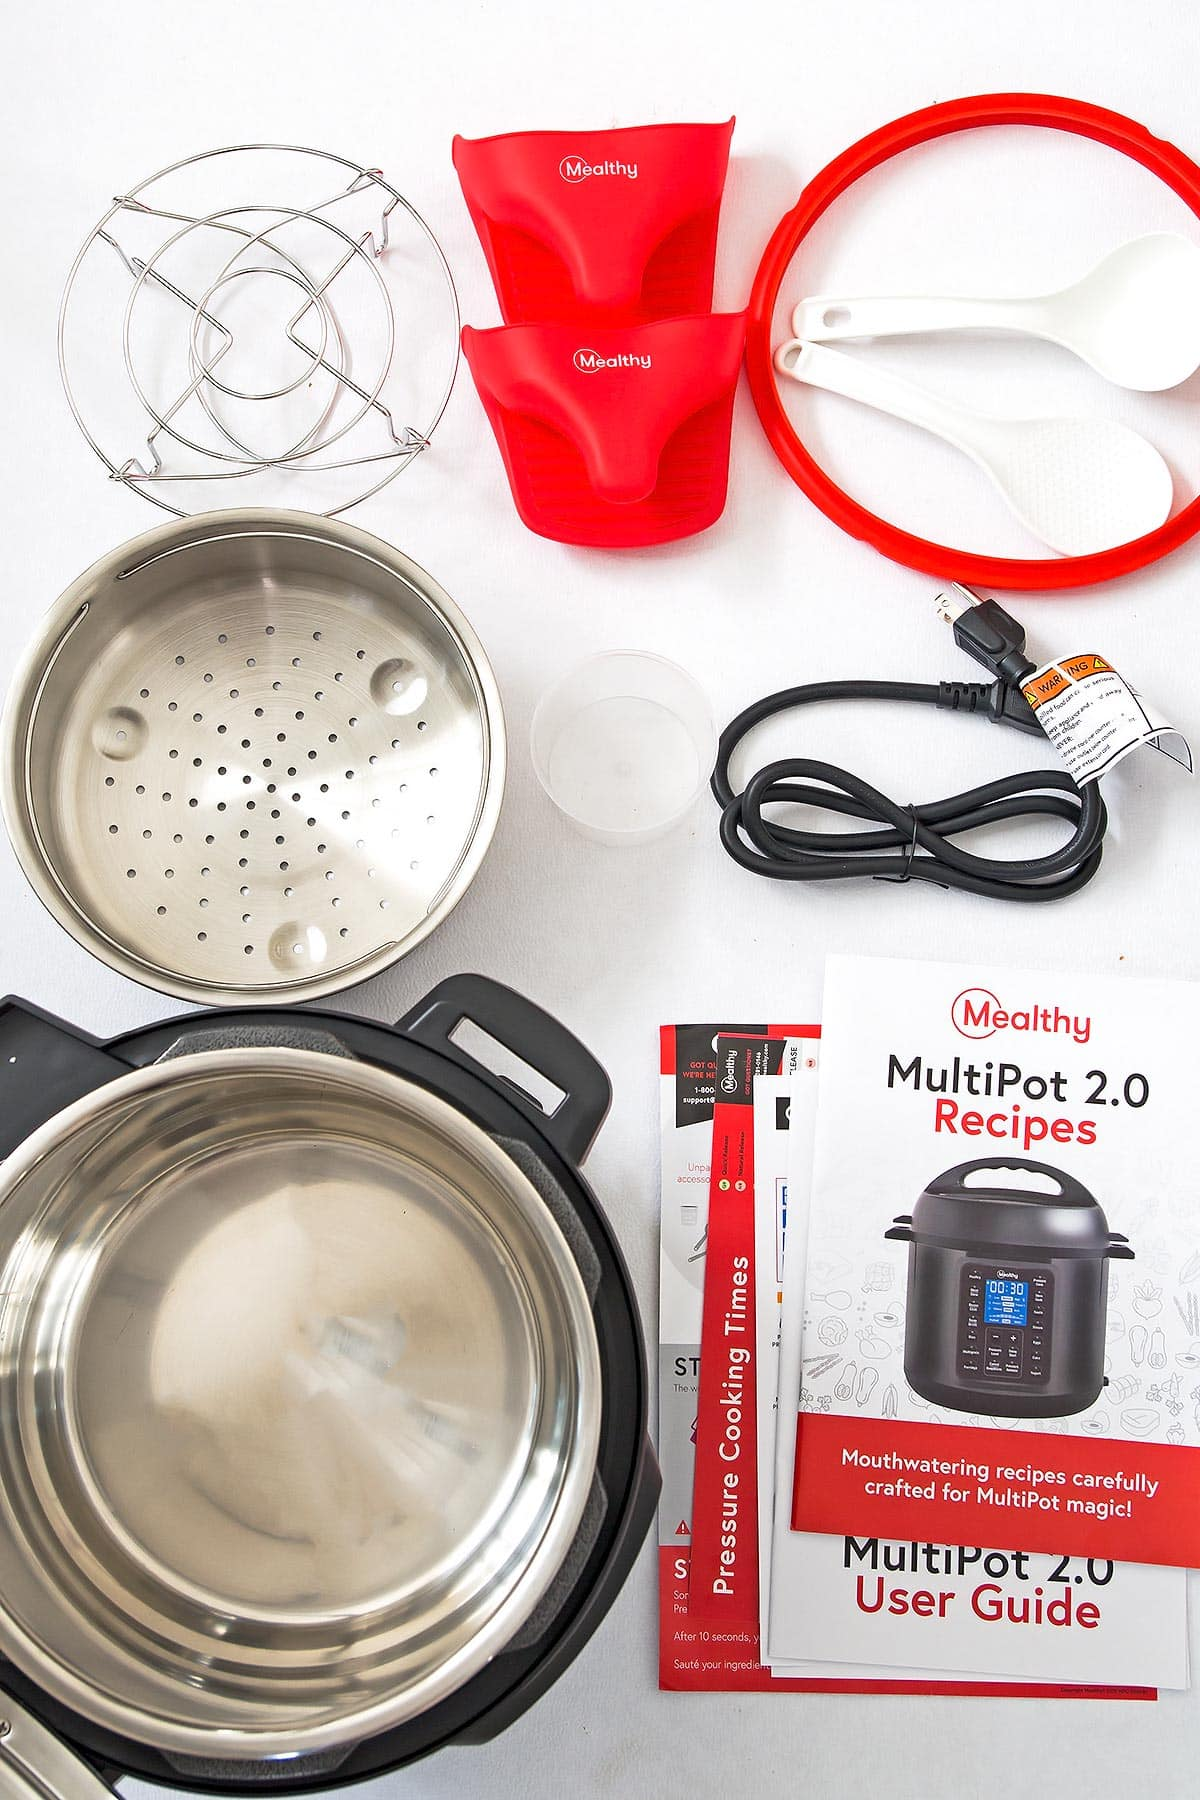 Mealthy Multipot what comes in the box